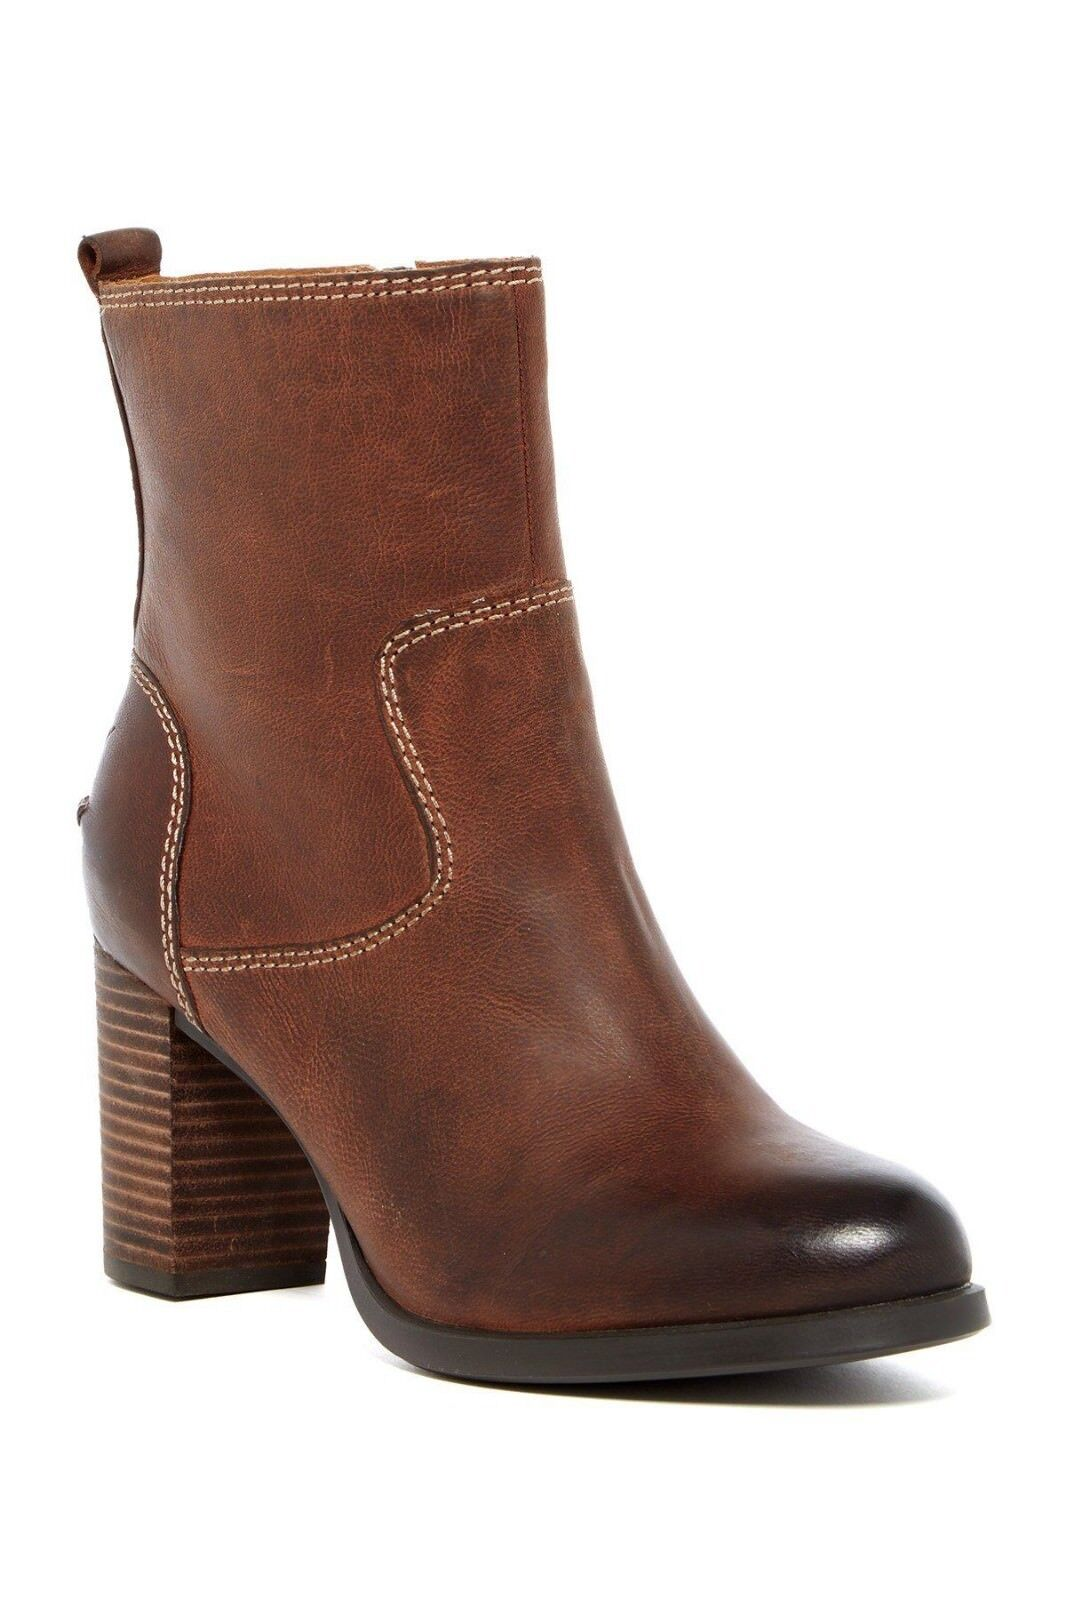 SPERRY TOP-SIDER Heeled Ankle Booties Dasher Grace Braun Leder Heeled TOP-SIDER Stiefel 9 New 746a81